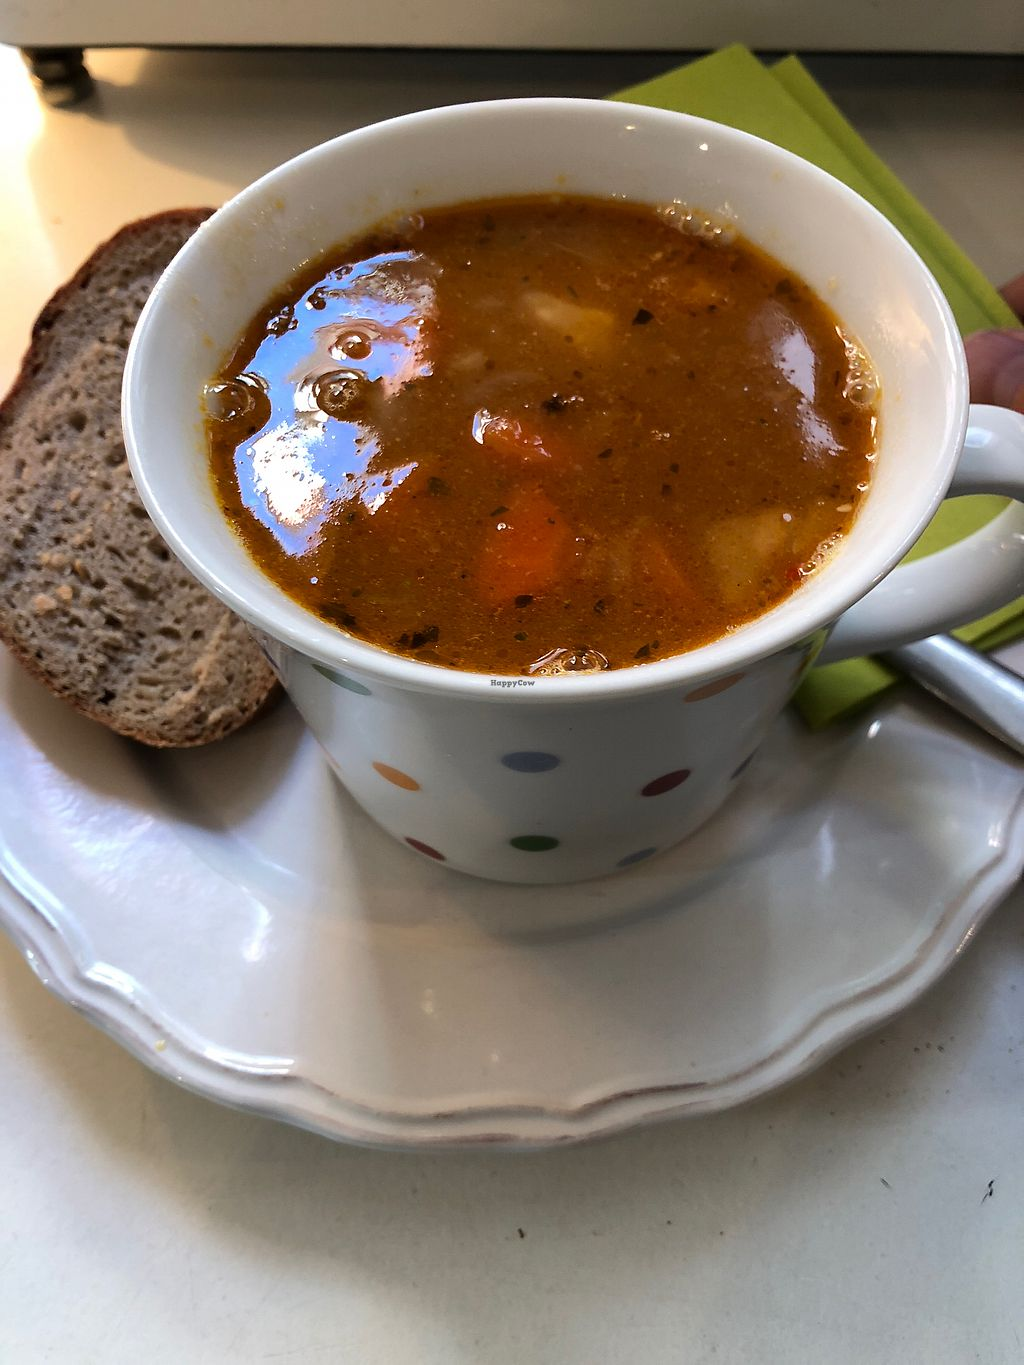 """Photo of Lieblingscafe  by <a href=""""/members/profile/jonmountjoy"""">jonmountjoy</a> <br/>Soup <br/> February 13, 2018  - <a href='/contact/abuse/image/93438/358802'>Report</a>"""